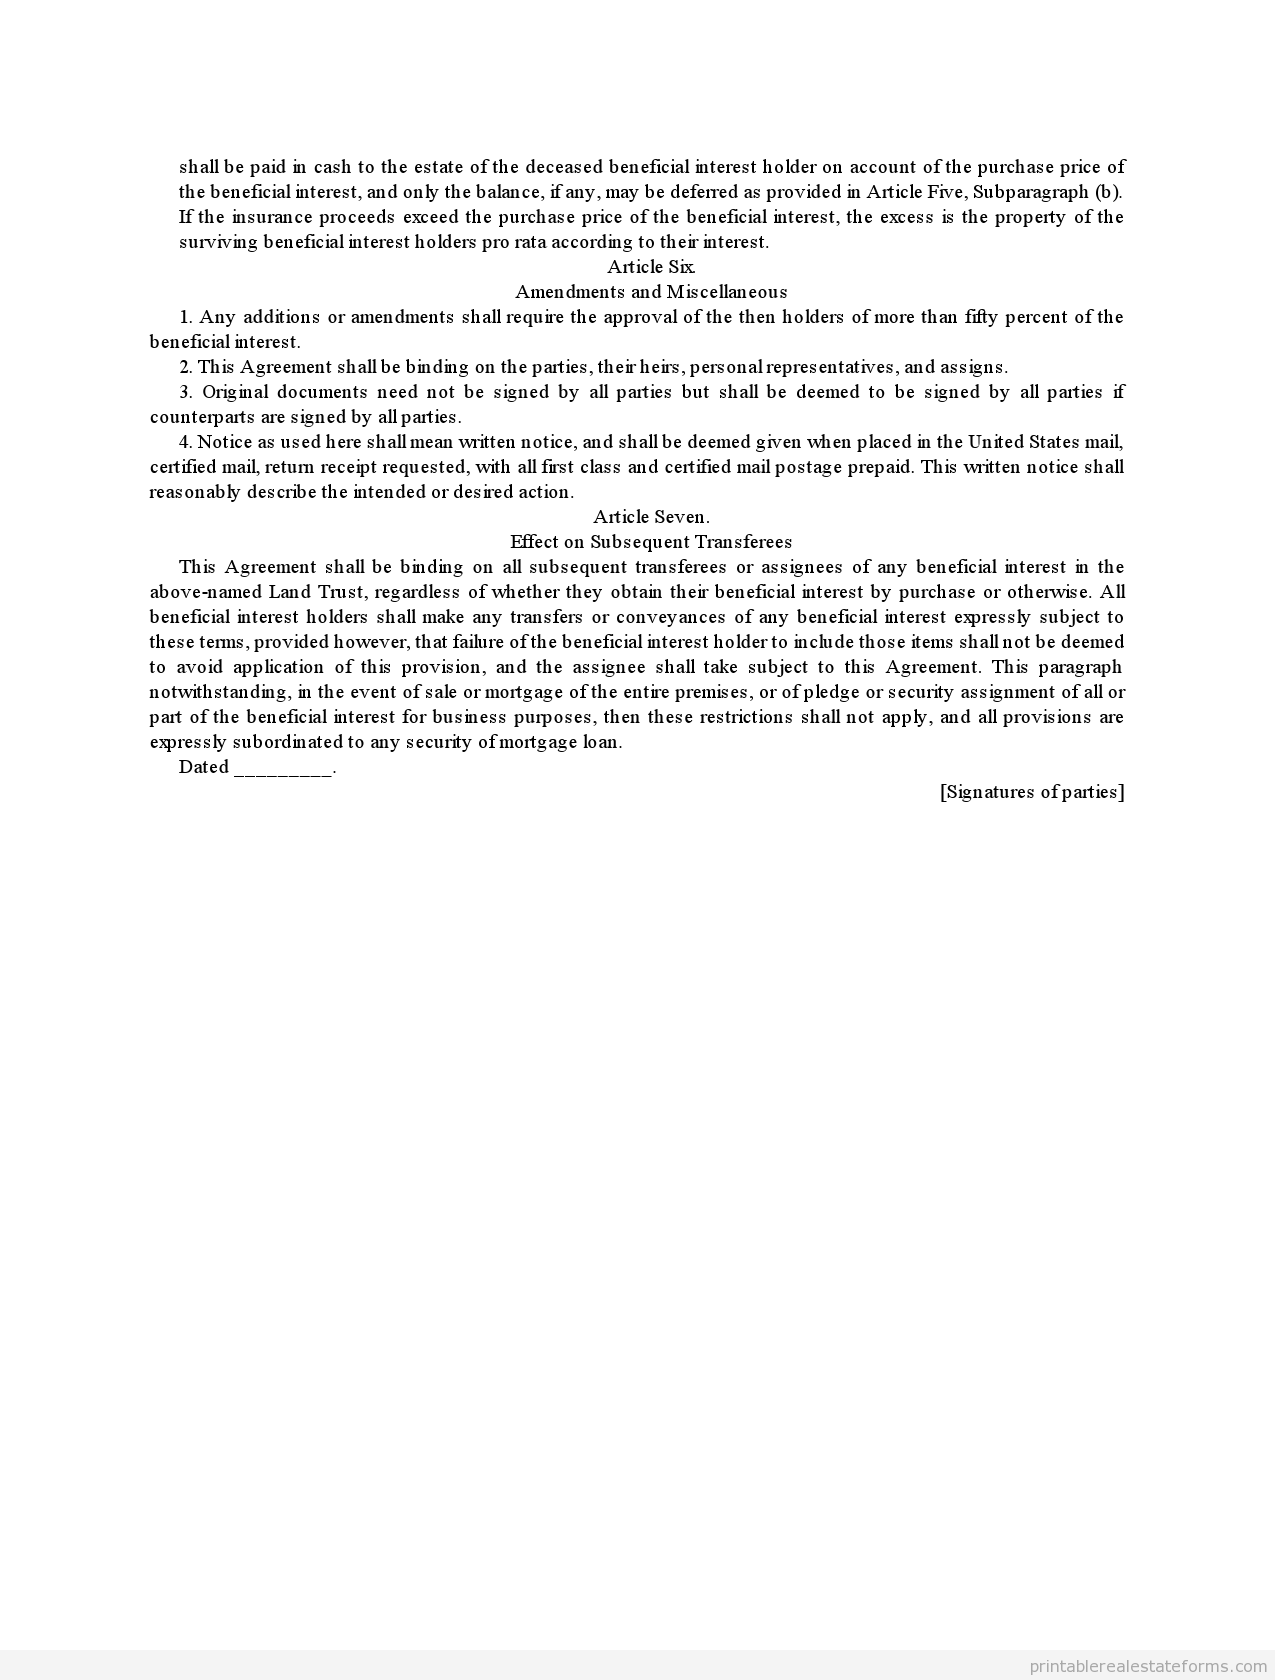 Sample Printable Complex Beneficiary Agreement Form